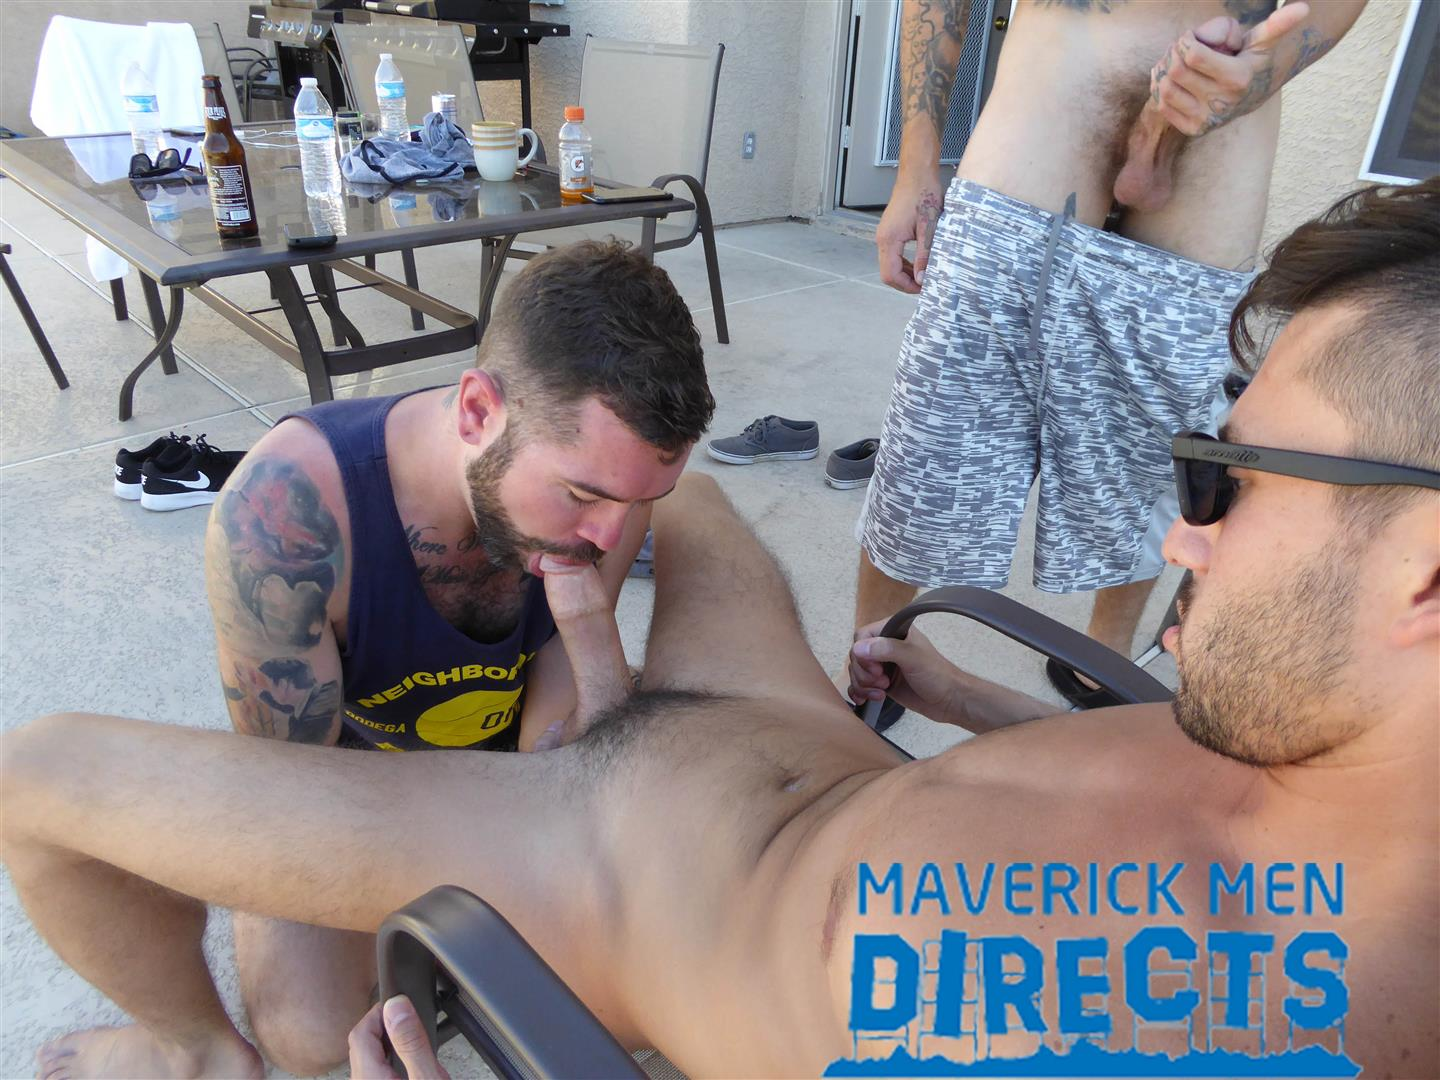 Maverick Men Directs Real Guys Having Bareback Sex Free Video 03 Spit On That Hairy Hole And Bareback That Ass